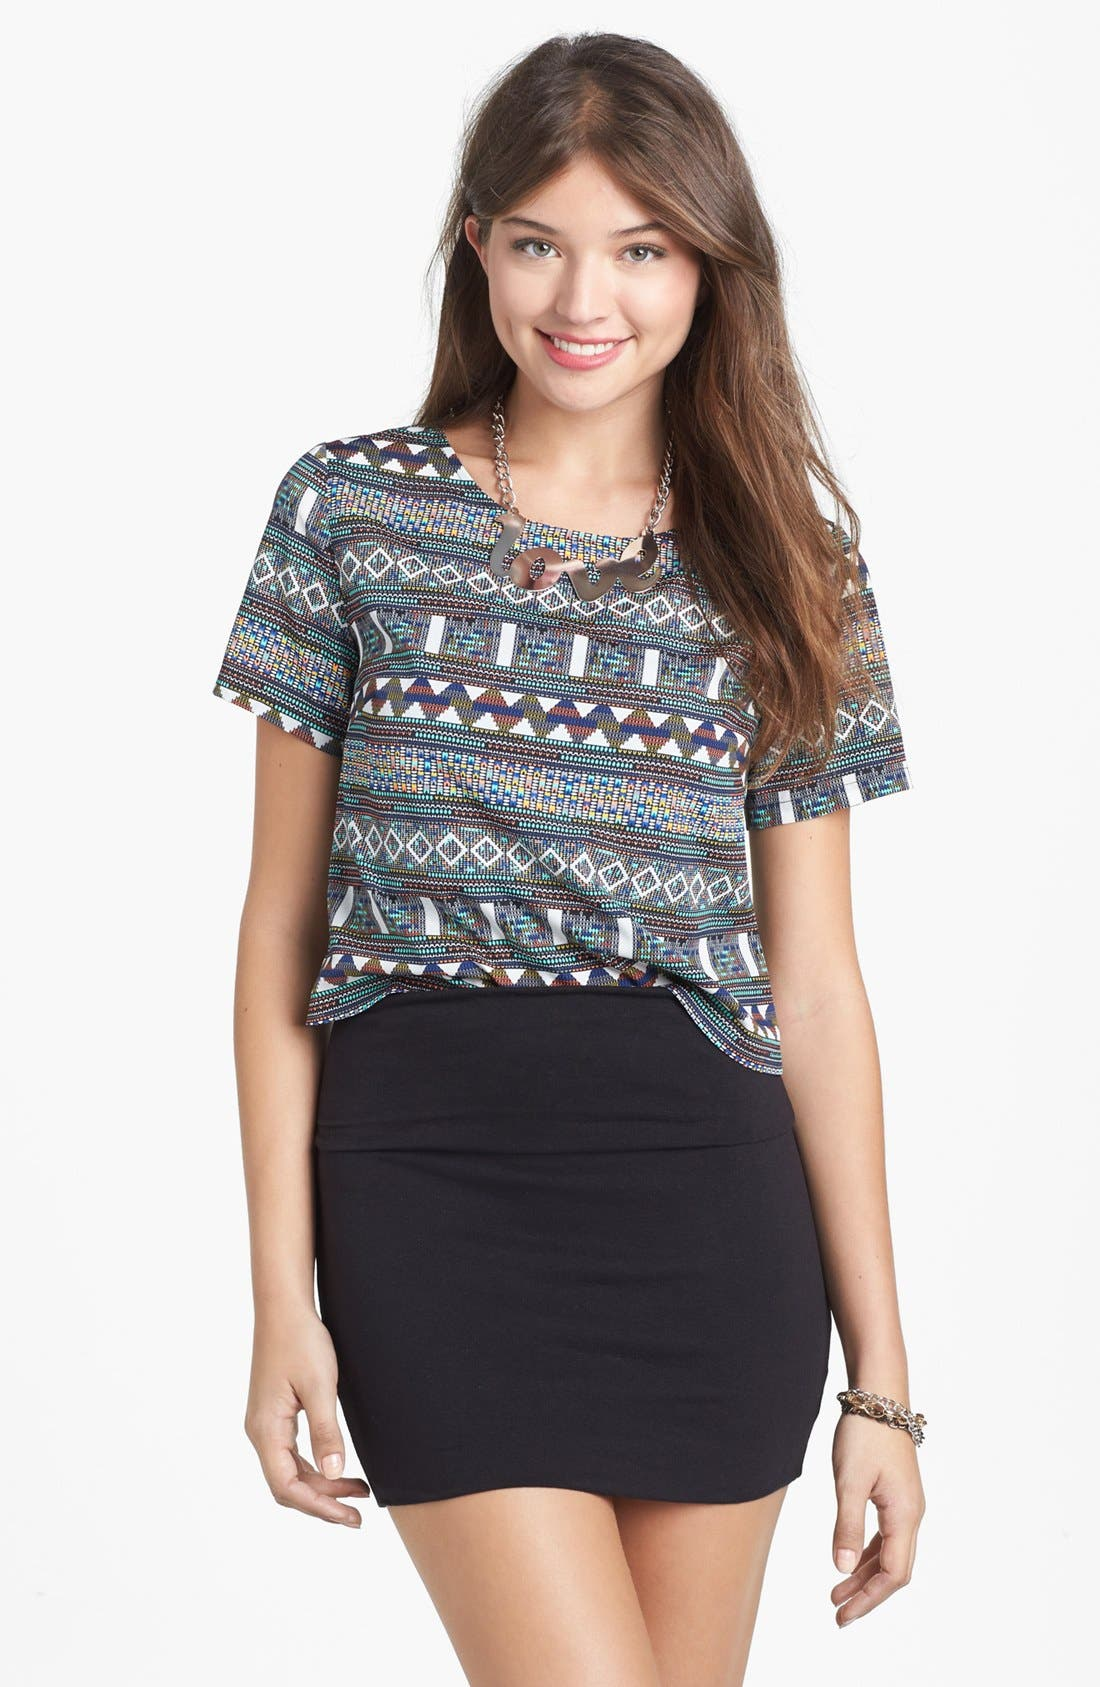 Alternate Image 1 Selected - Lily White Banded Skirt (Juniors) (Online Only)